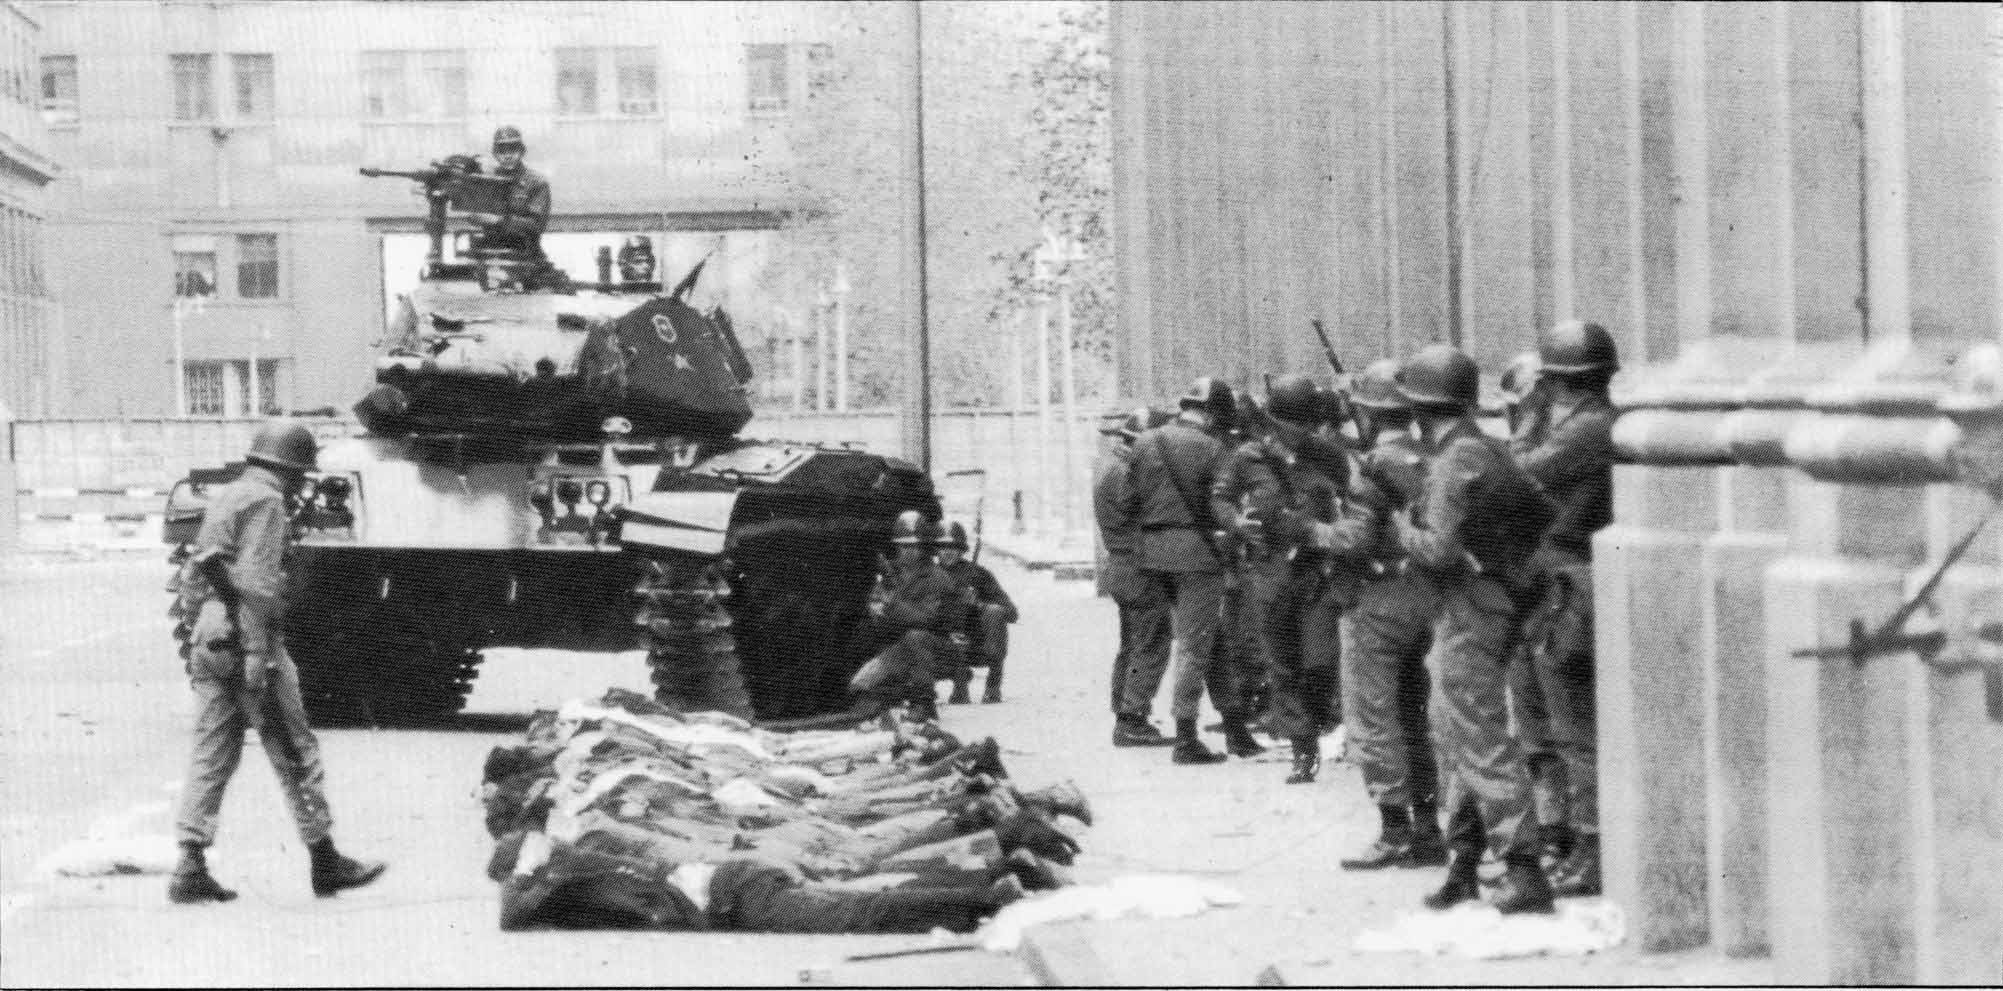 September 11, 1973 - military coup in Chile